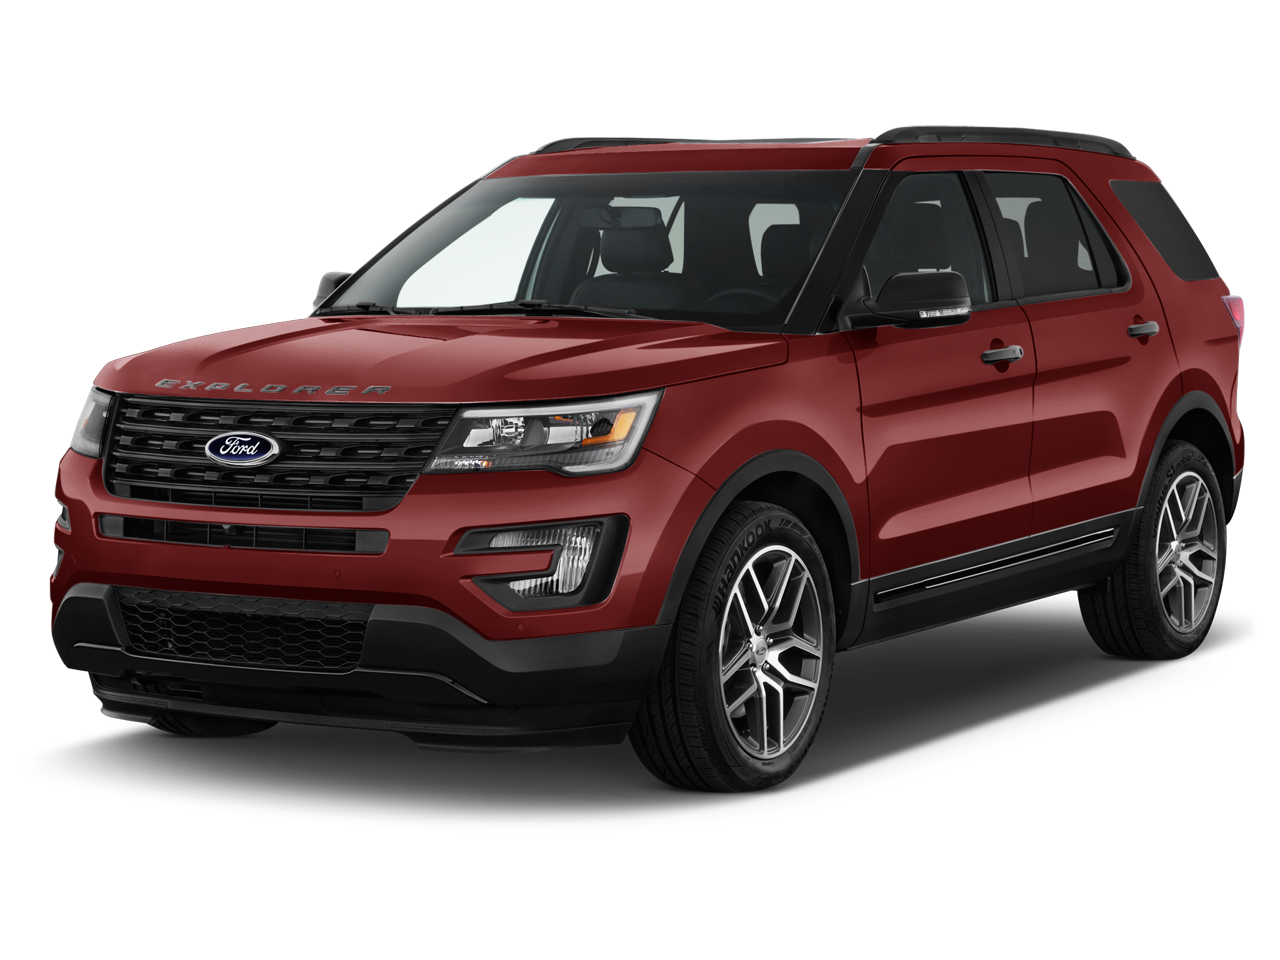 new 2017 ford explorer limited near joliet il auto mall matteson. Black Bedroom Furniture Sets. Home Design Ideas